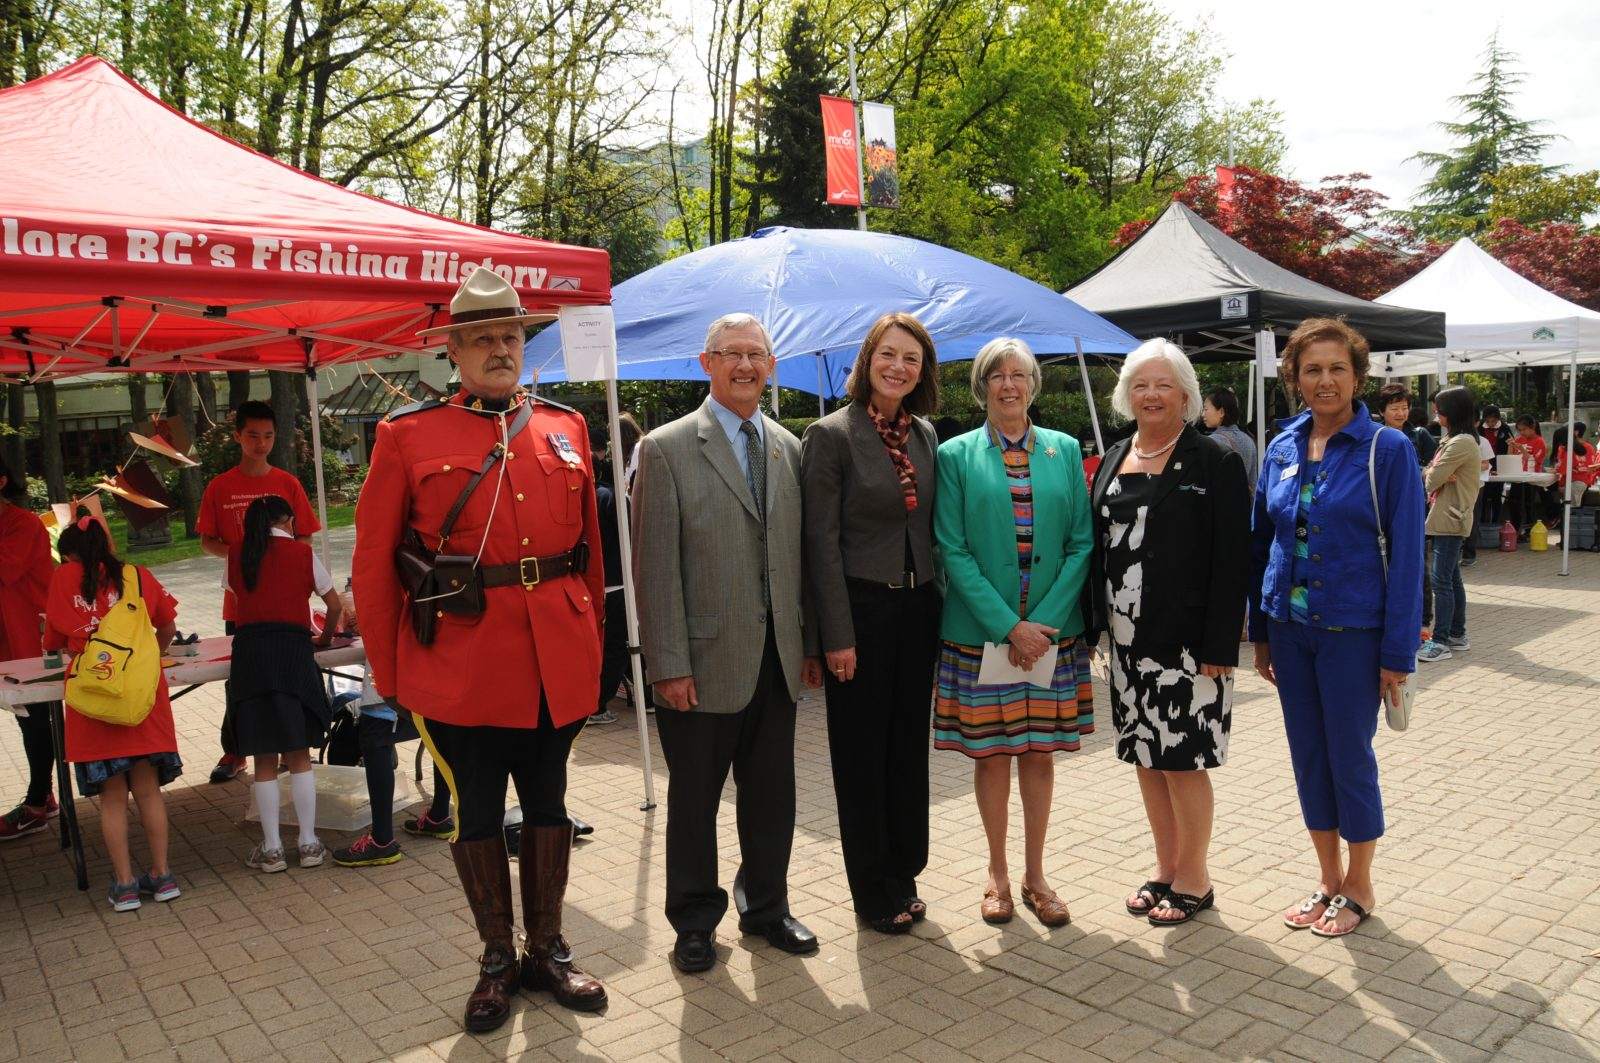 From left to right – RCMP Cst. Barry Edwards, Richmond Councillor Bill McNulty, Delta's Acting Mayor Jeannie Kanakos, Lieutenant Governor of BC - the Honourable Judith Guichon, OBC, Richmond's Acting Mayor Linda Barnes, Richmond Councillor Linda McPhail